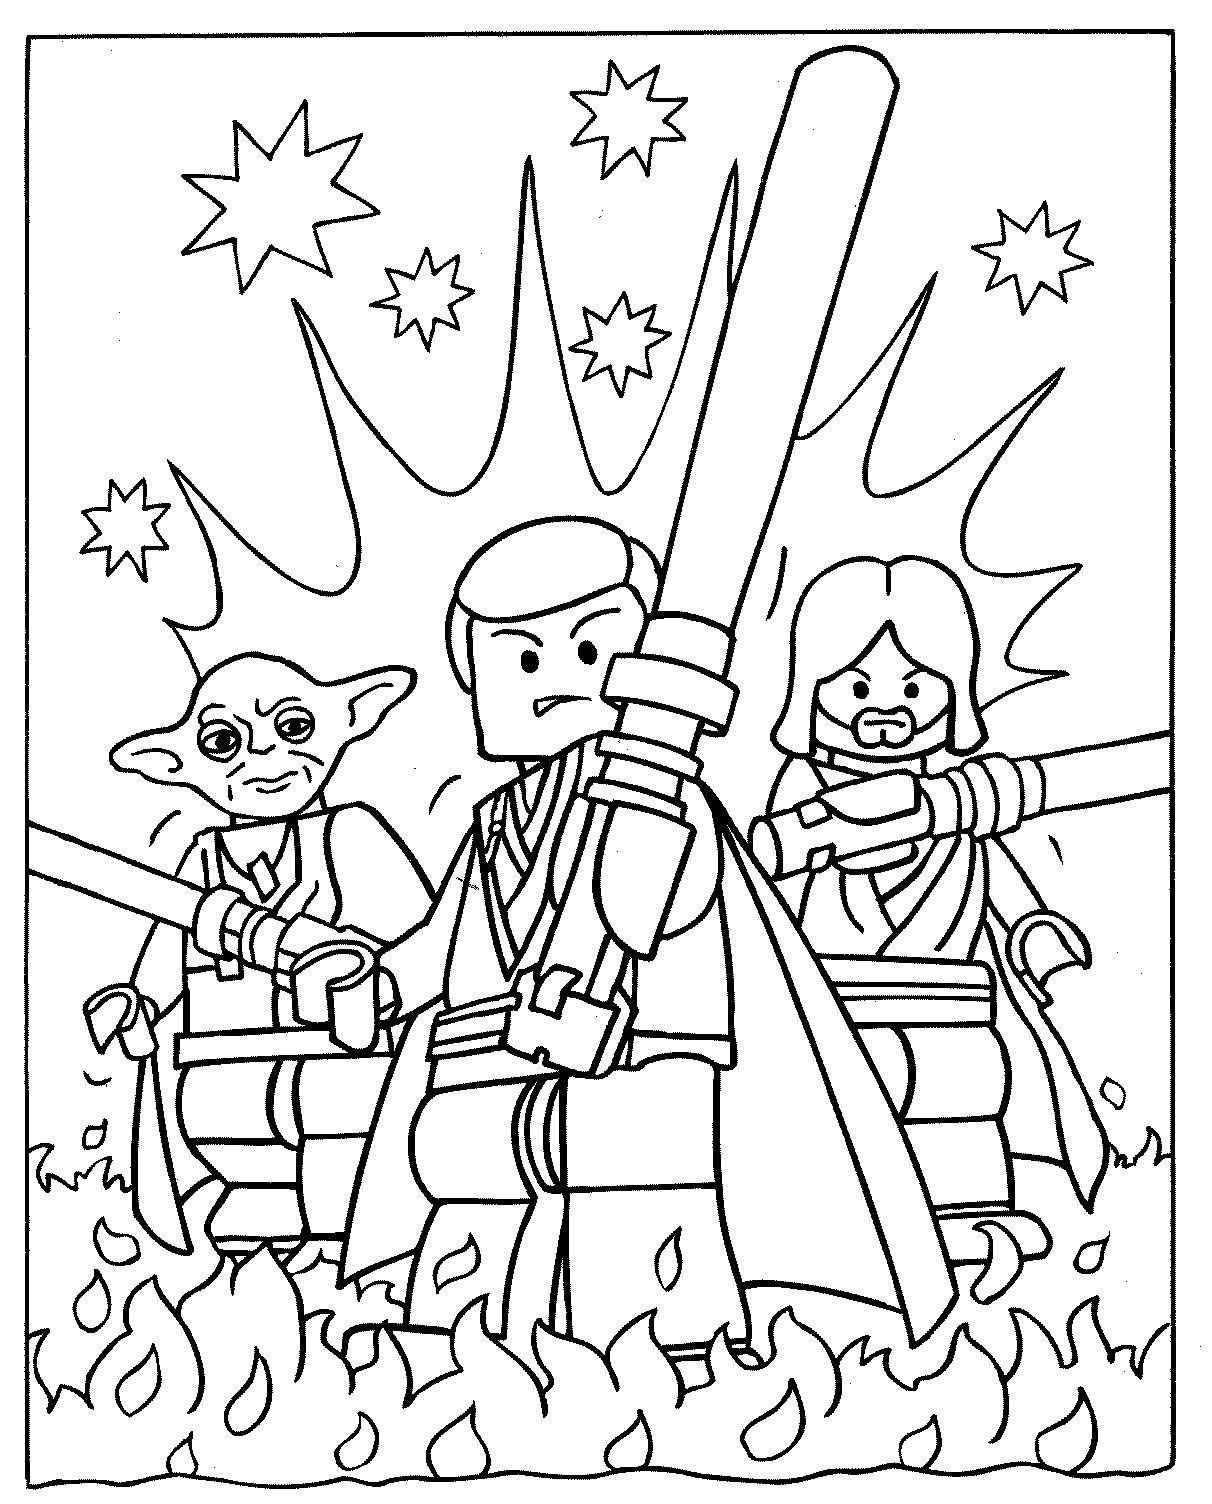 Free Printable Star Wars Coloring Pages For Kids Lego Coloring Pages Lego Coloring Star Wars Colors